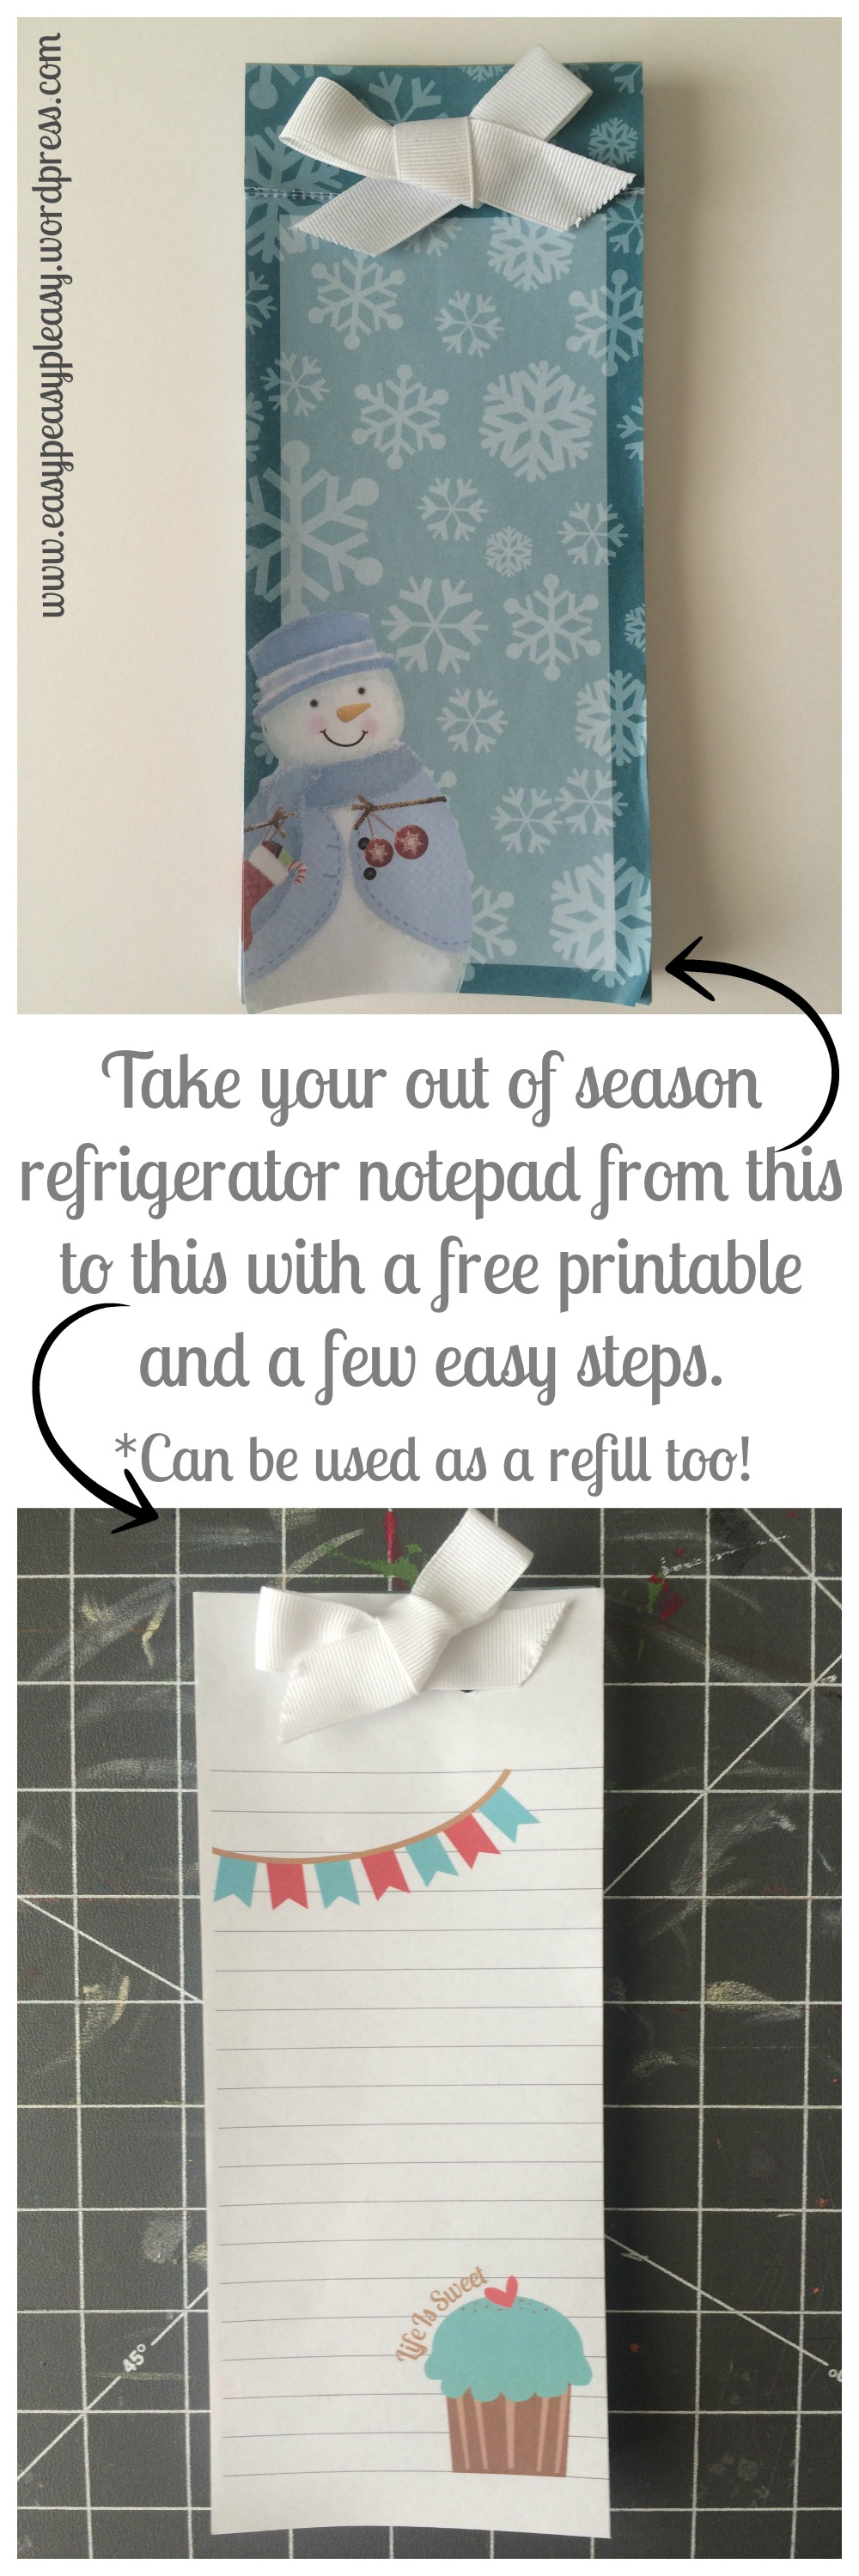 Take your out of season refrigerator notepad from this to this with a free printable and a few easy steps at https://easypeasypleasy.com